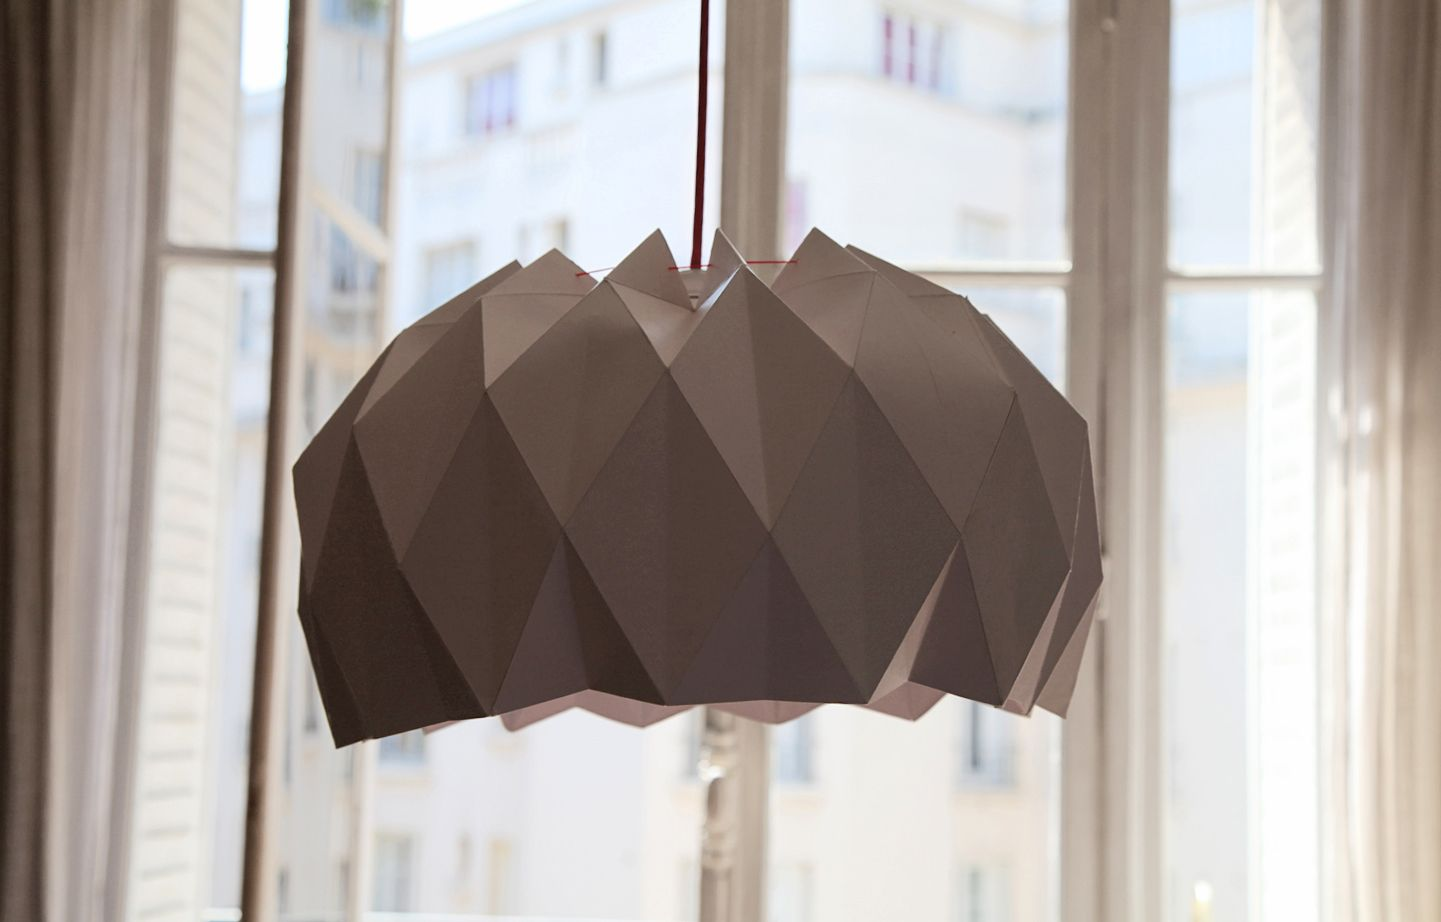 Suspension Origami Rose 25 43 Best Ideas About Suspension Origami On Pinterest